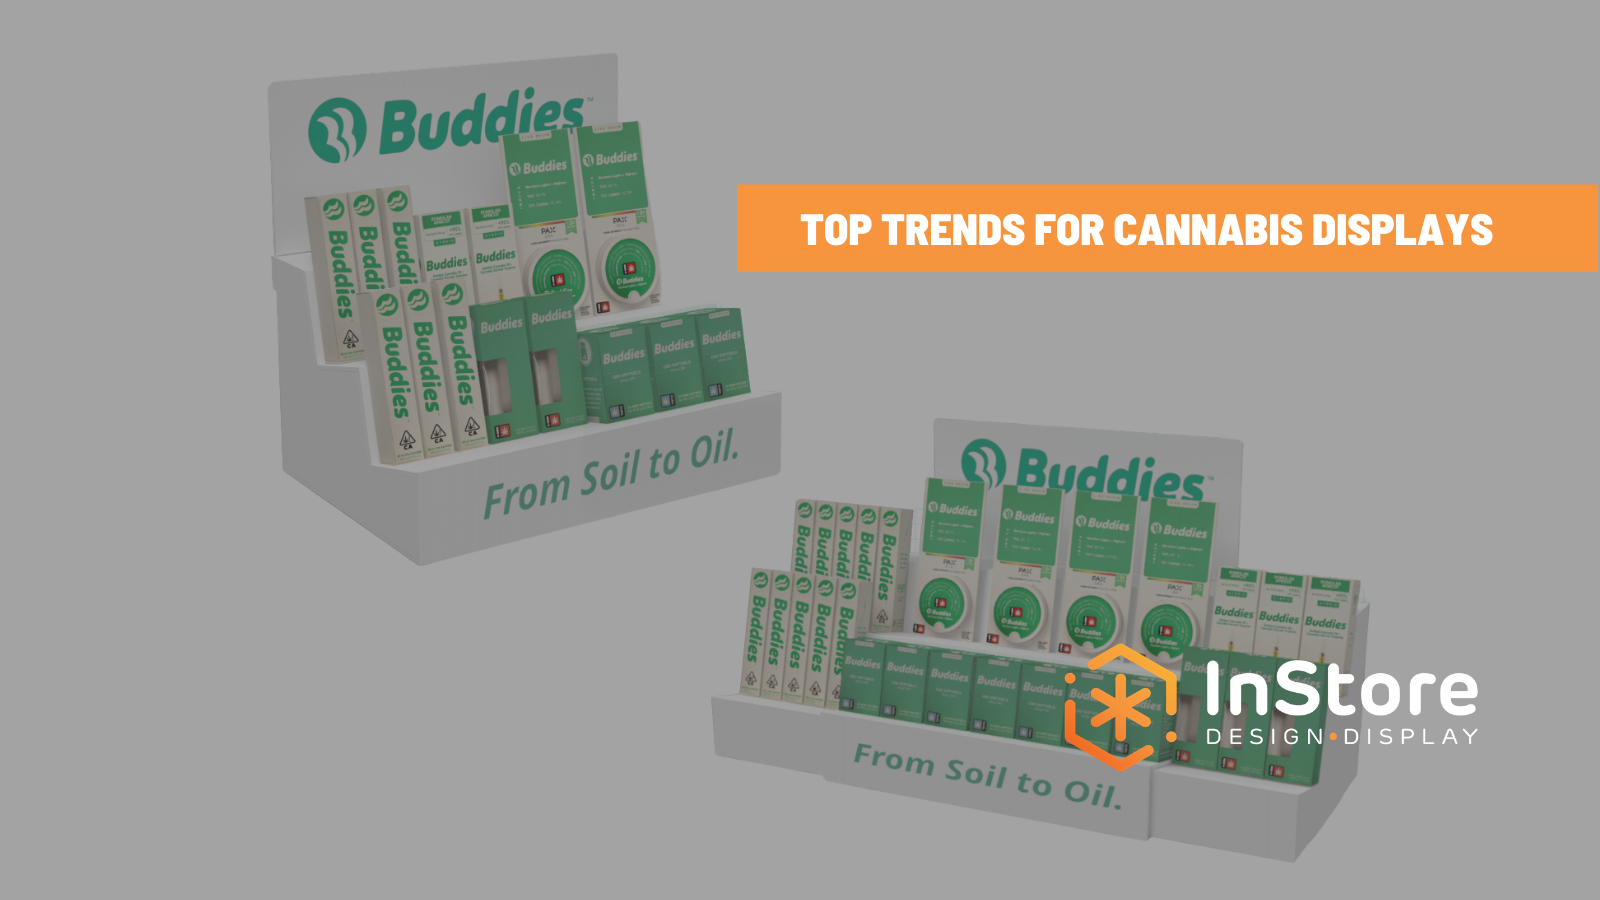 Top Retail Display Trends for Cannabis Vapes & Carts